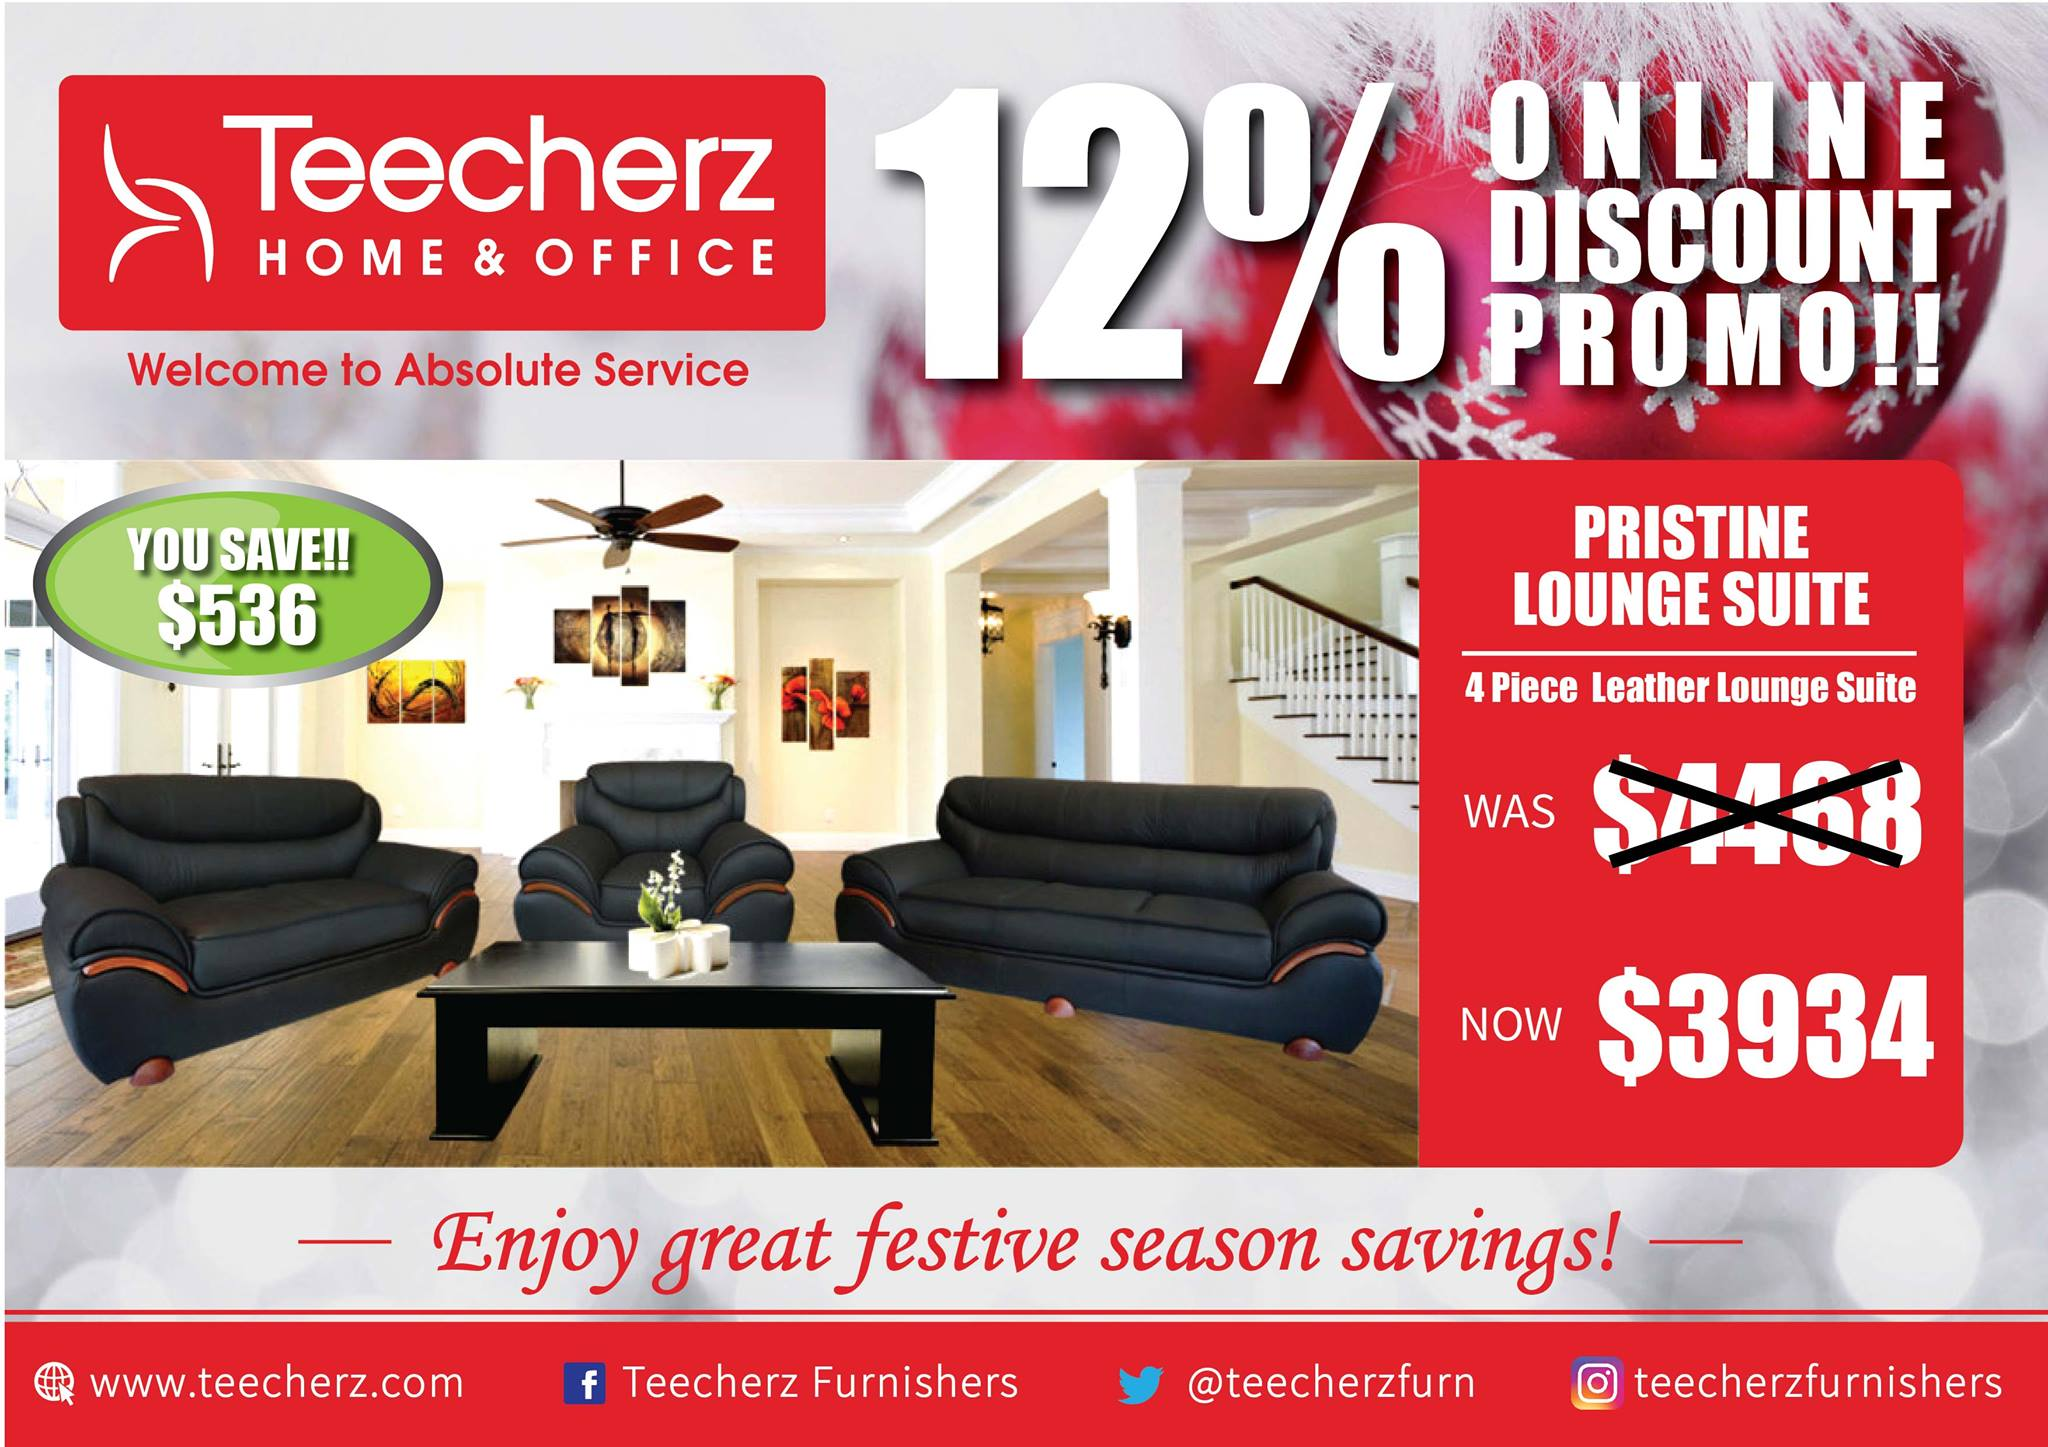 Teecherz Furniture Harare